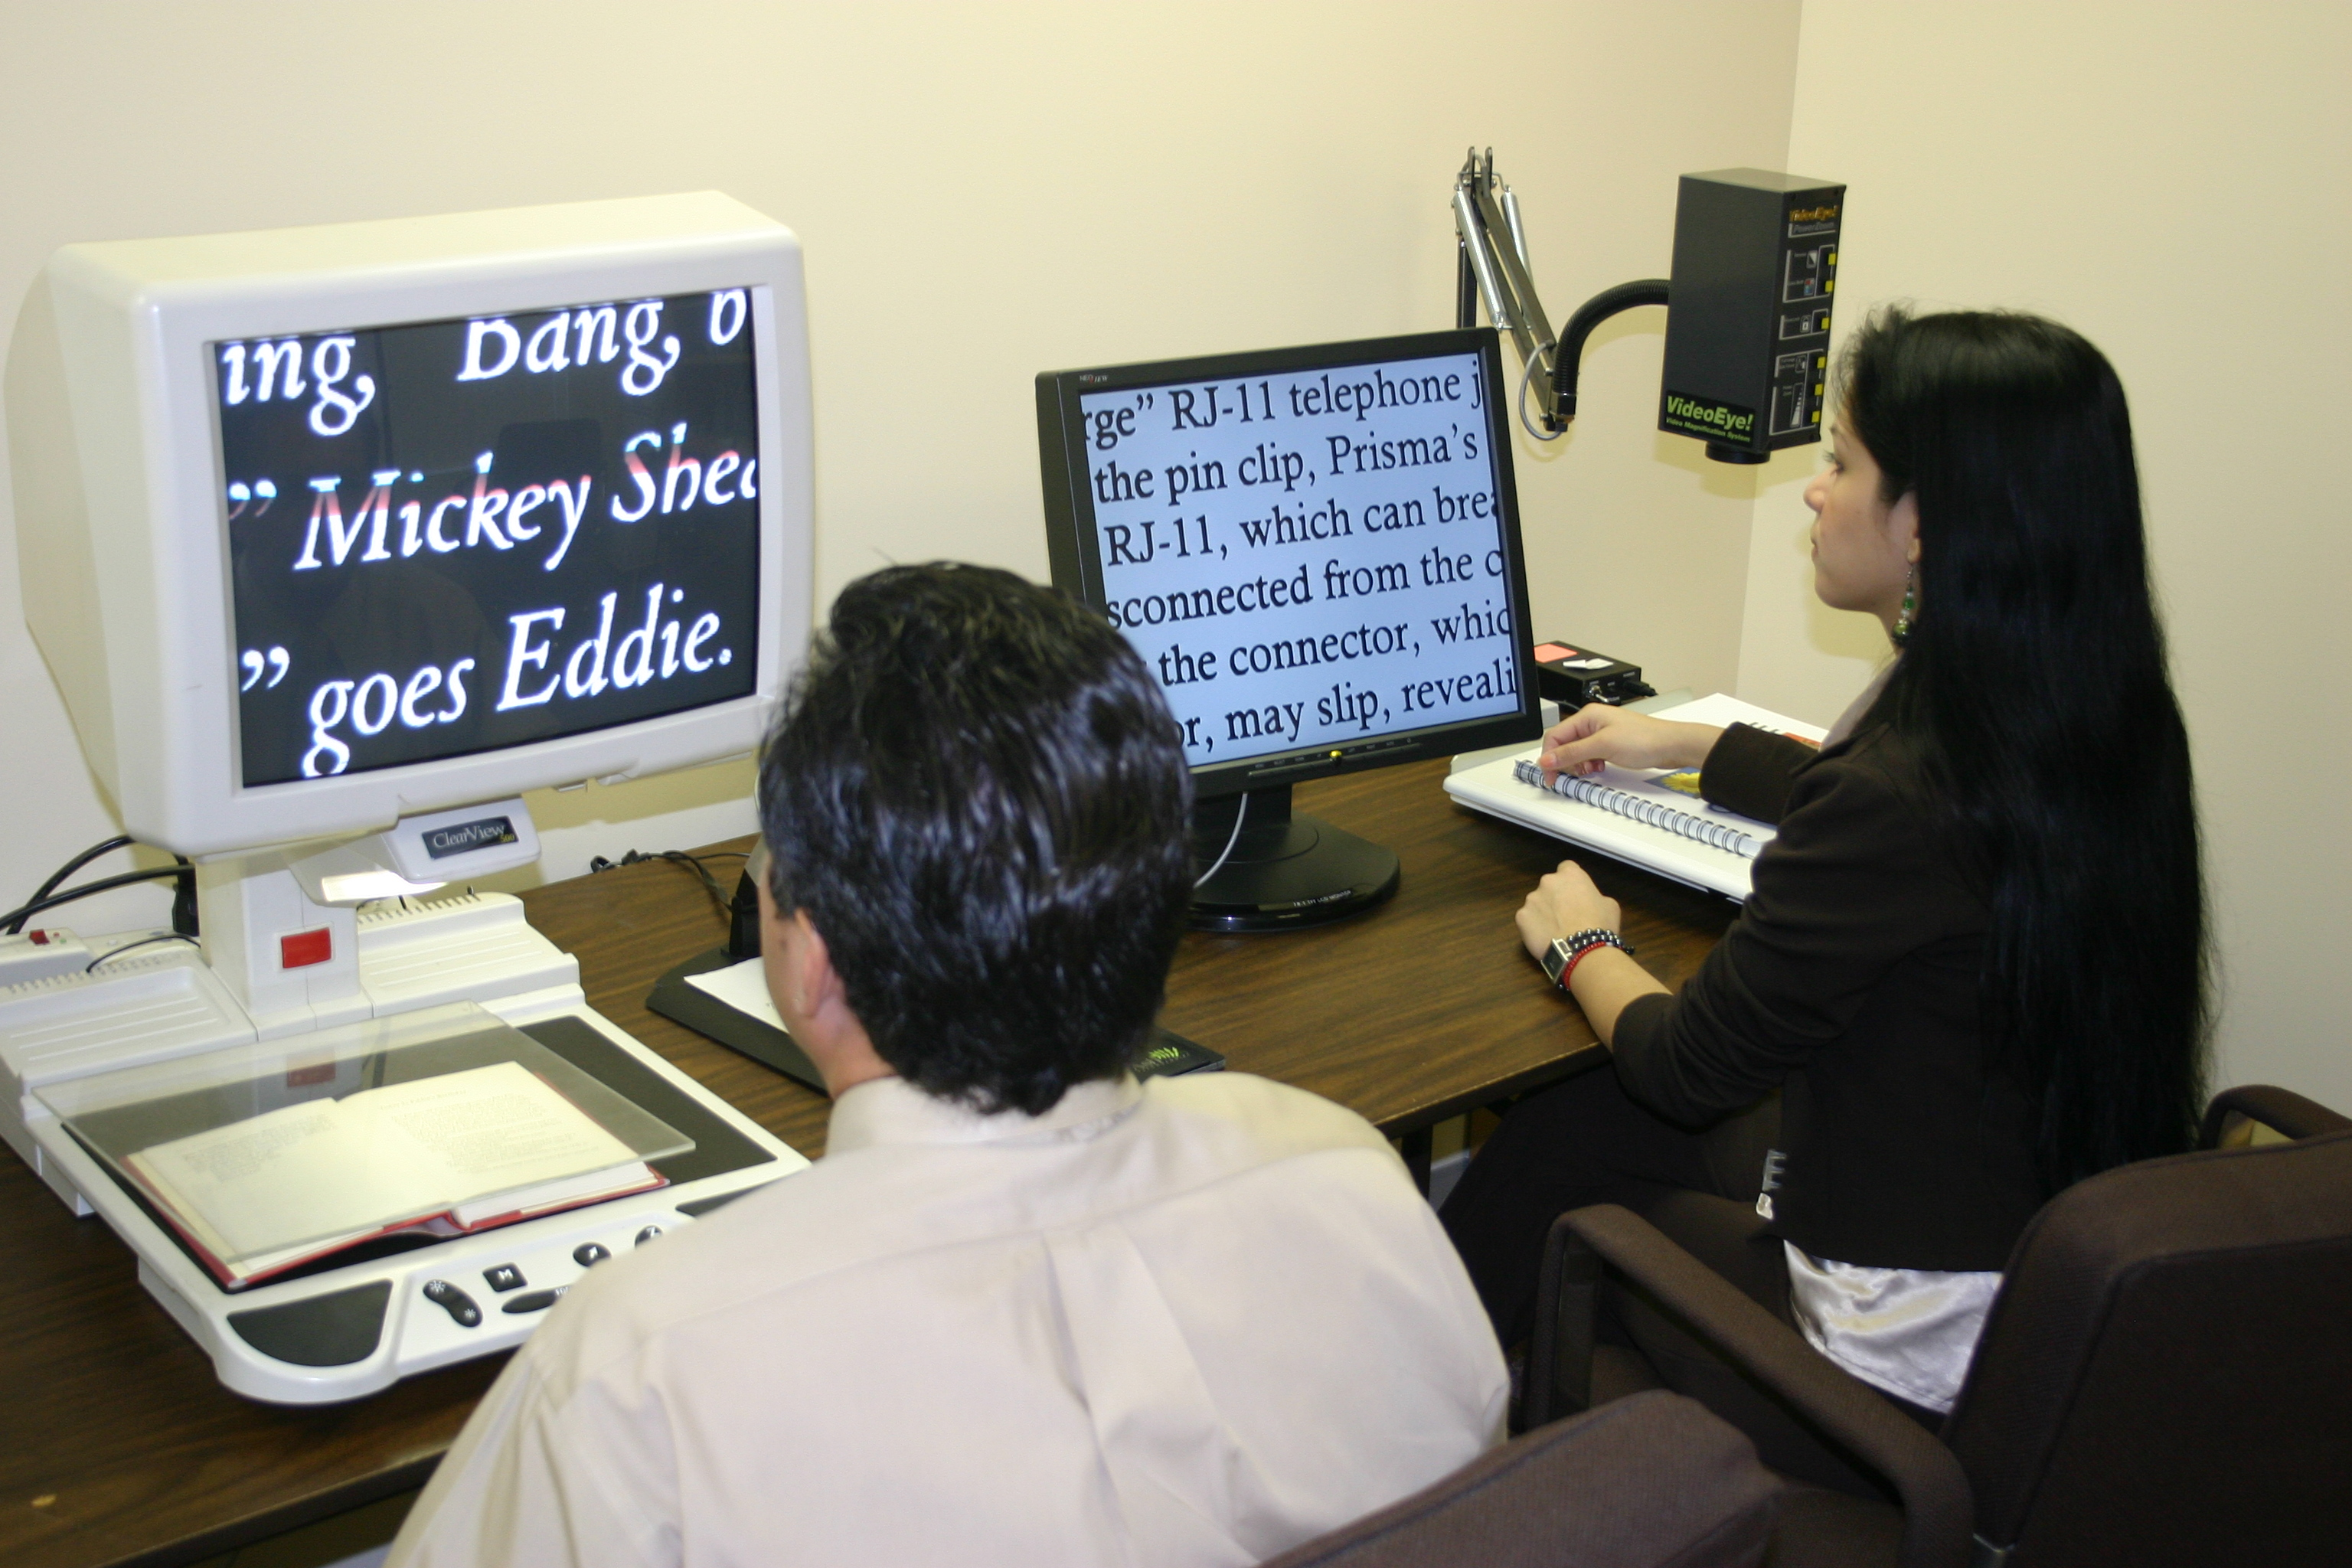 Picture of two people using Closed Circuit Televisions in our Reading Room.